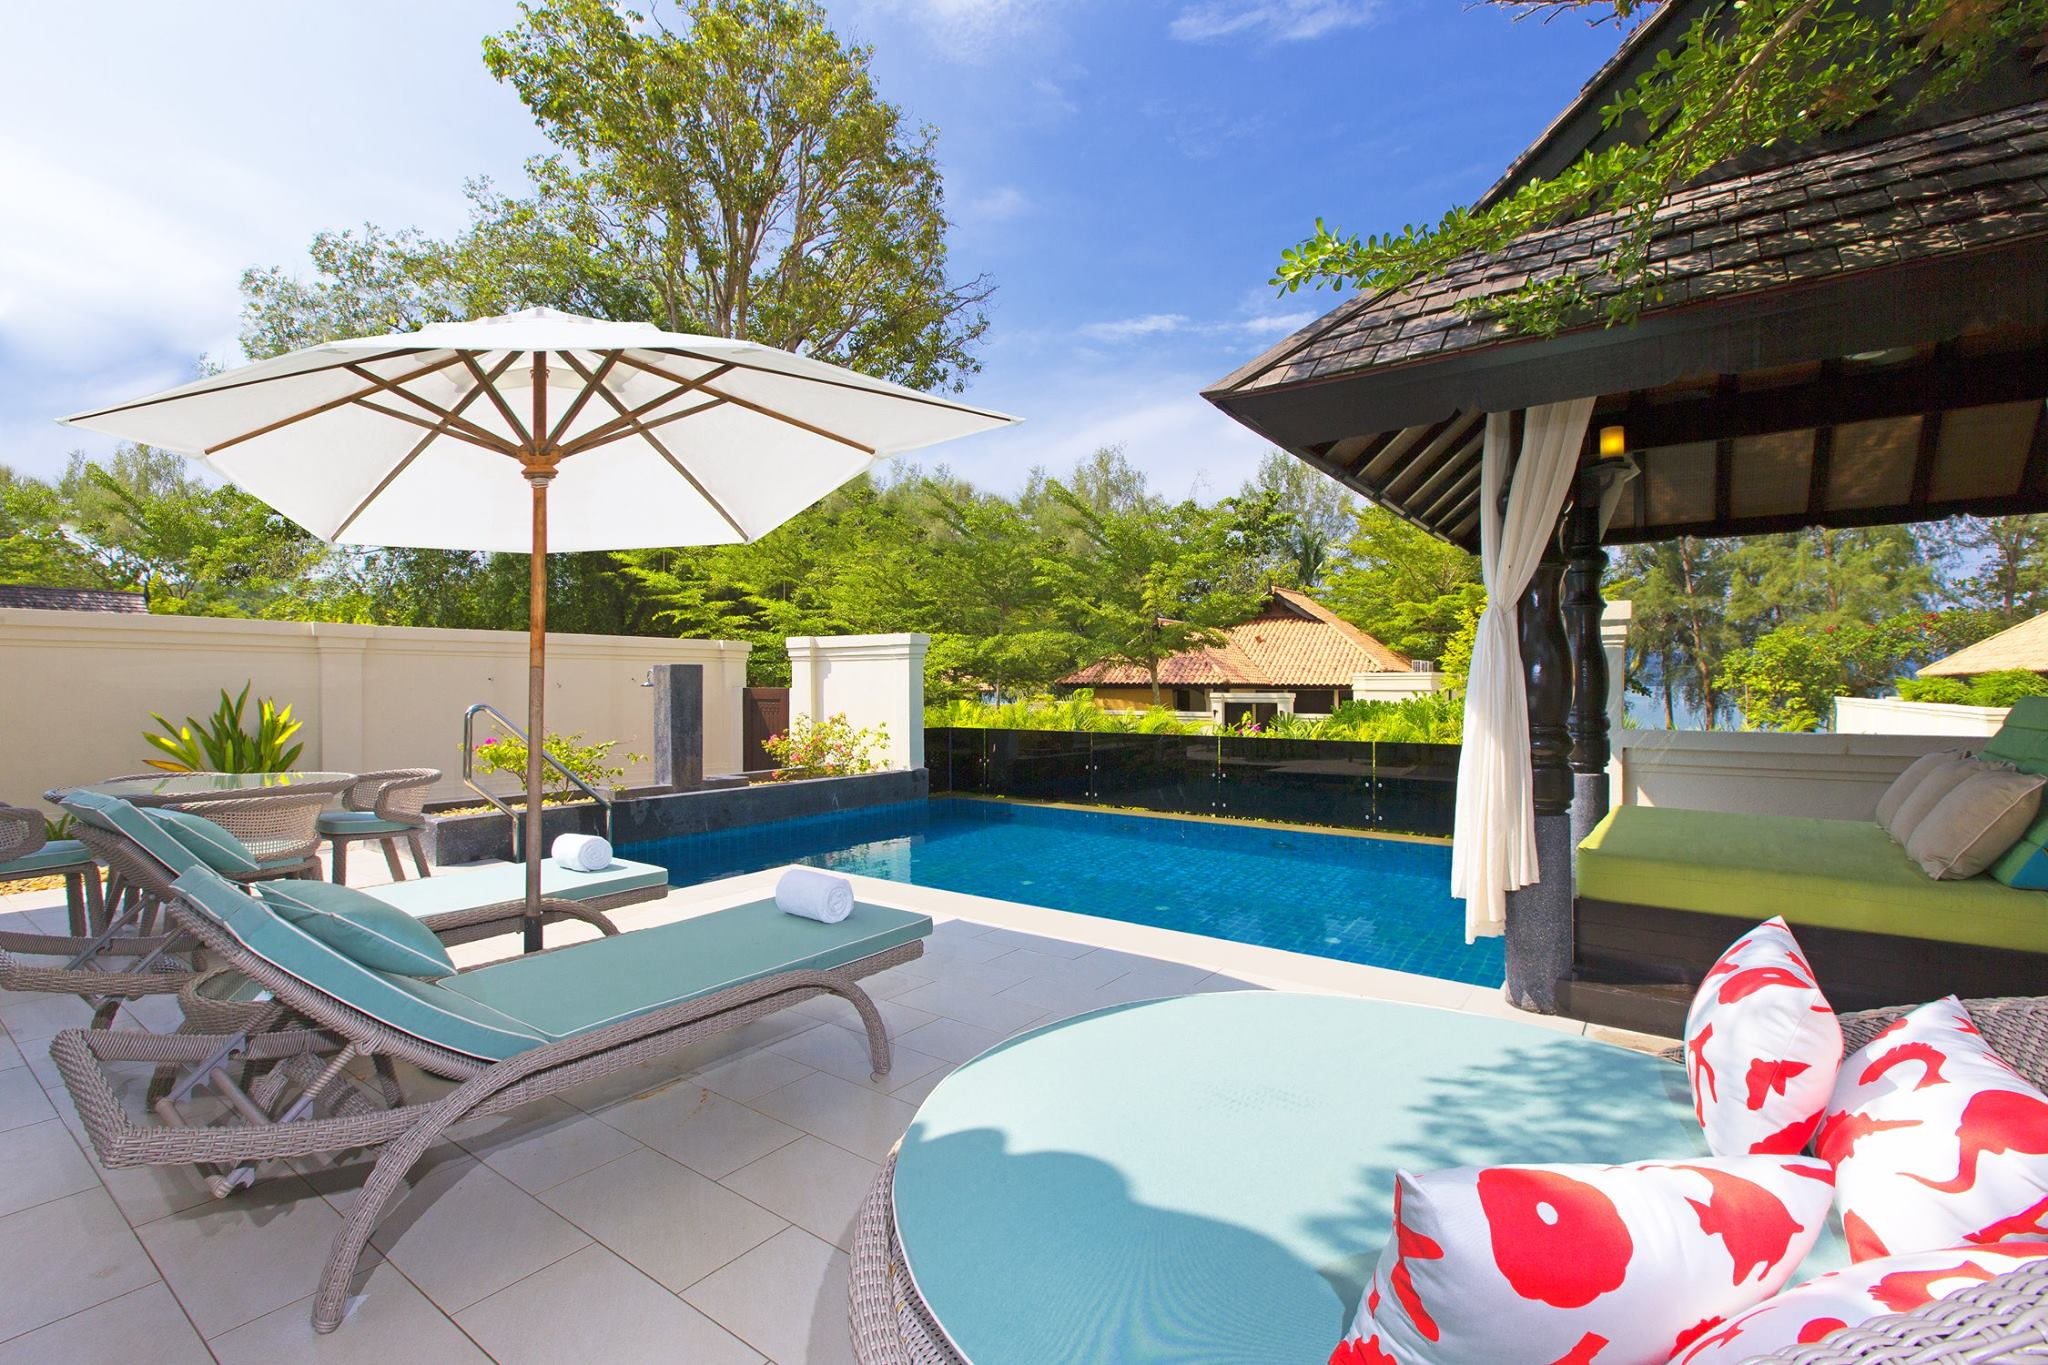 Image from The Westin Langkawi/Facebook